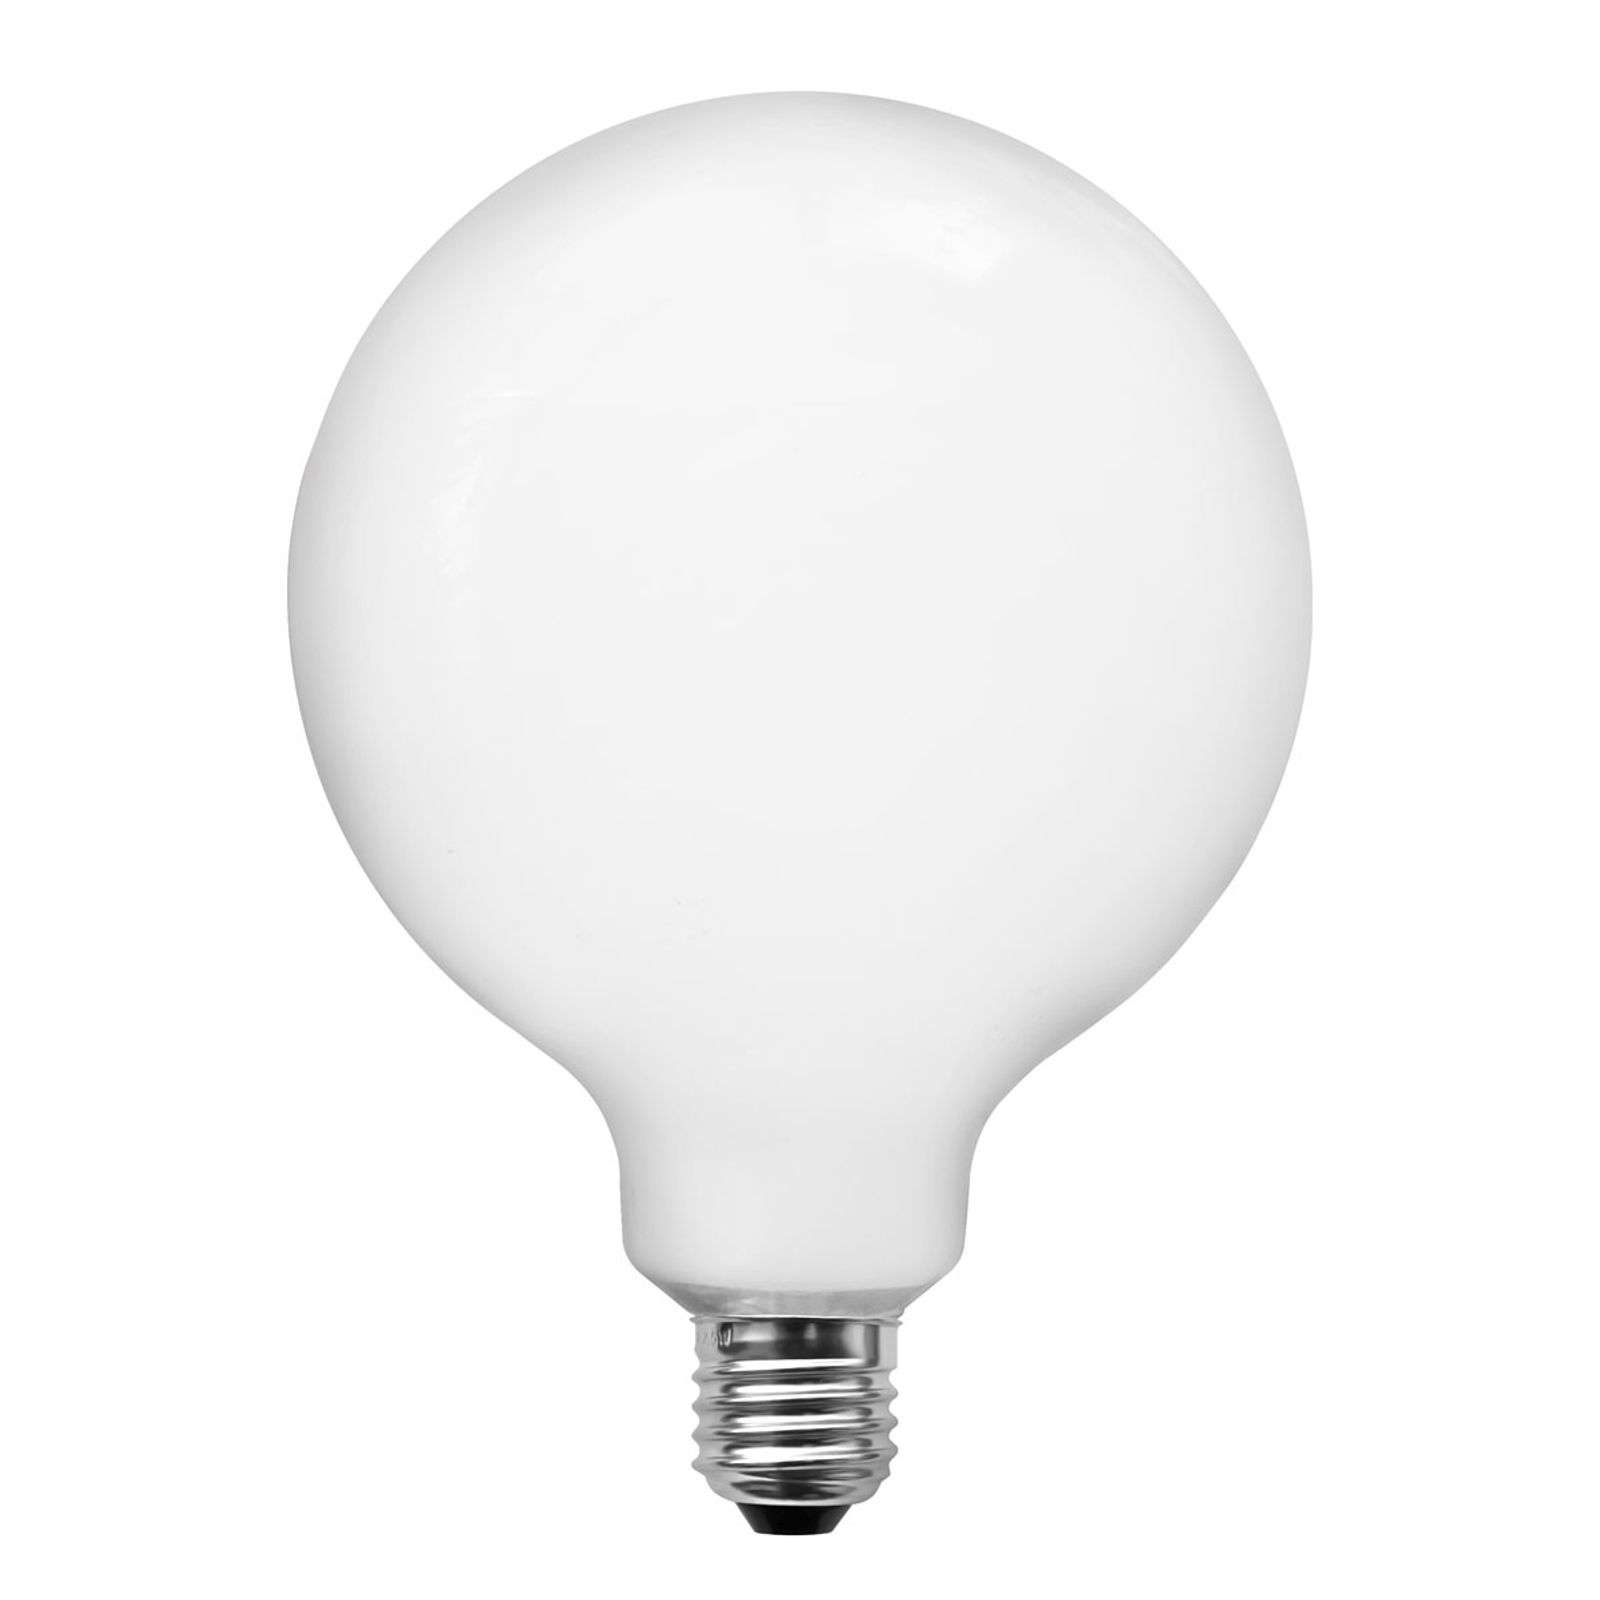 Lampadina LED E27 926 globo G95 4W dimmerabile